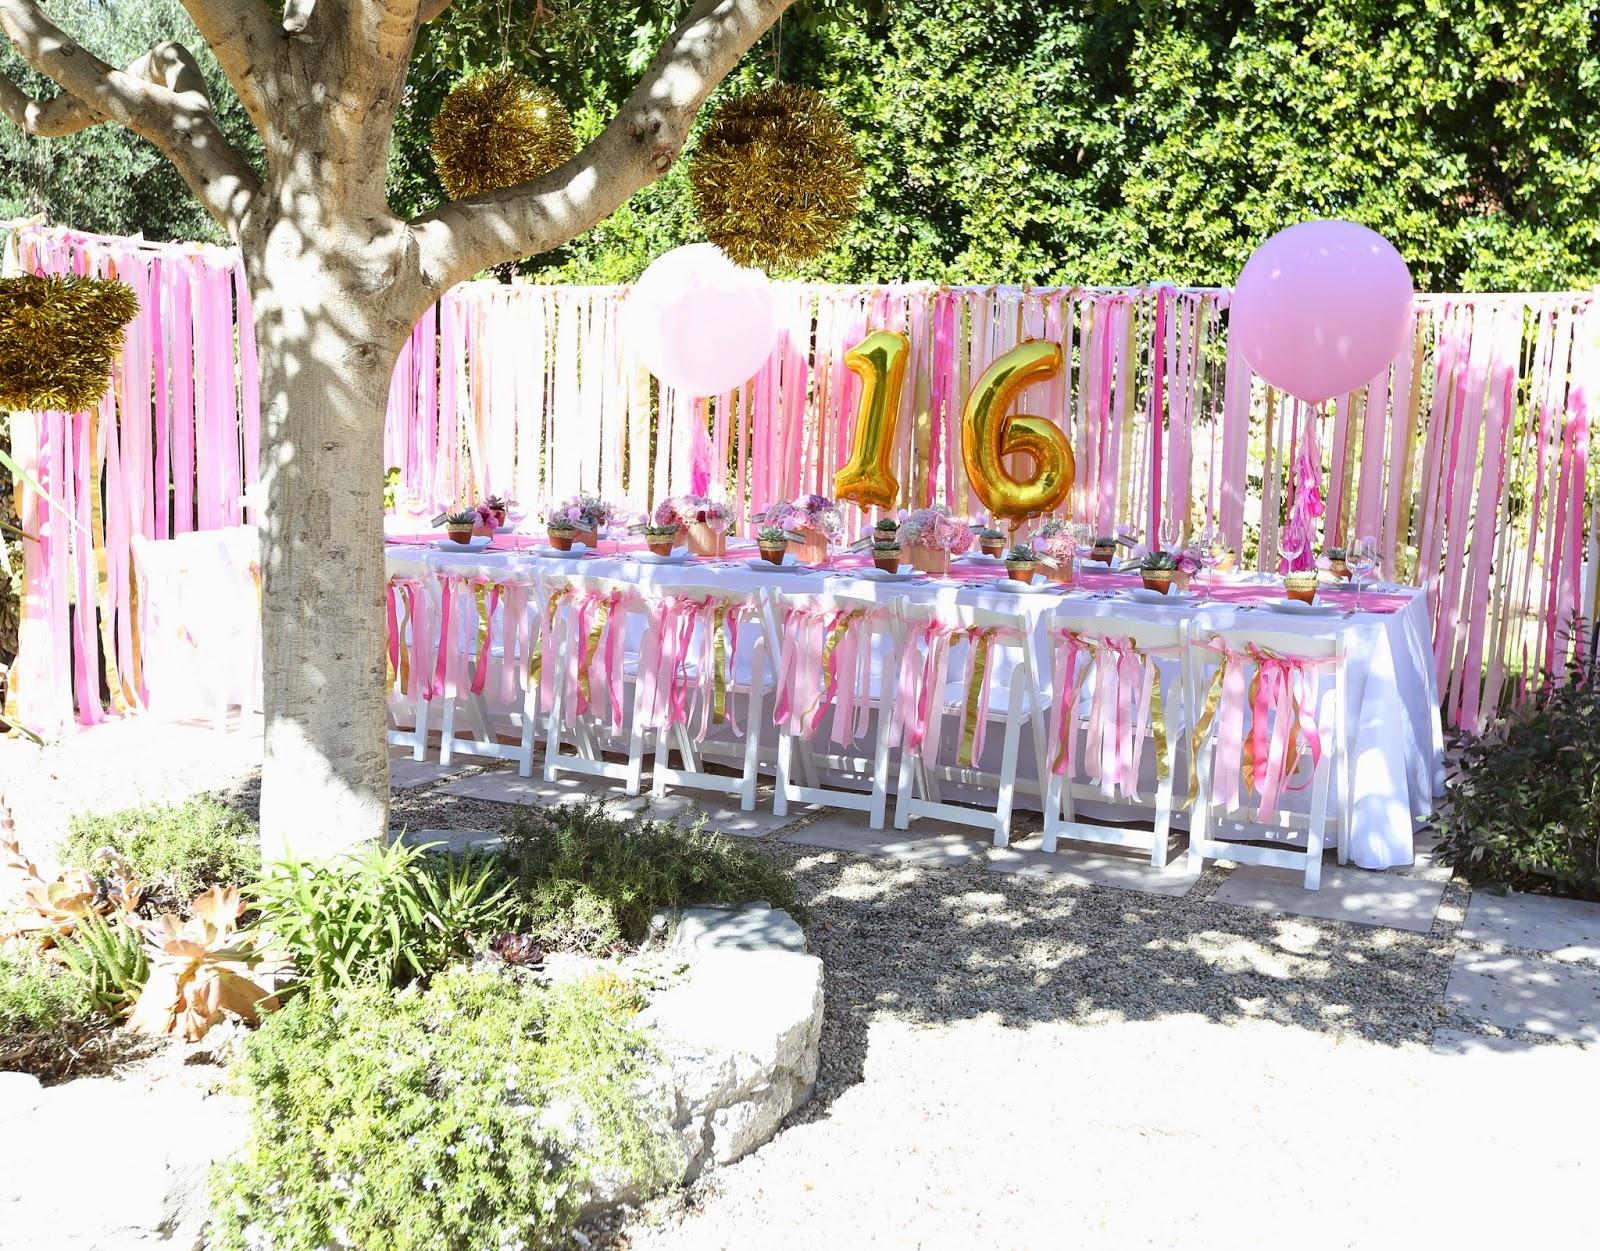 The coop sweet 16 party at home for Home party decorations